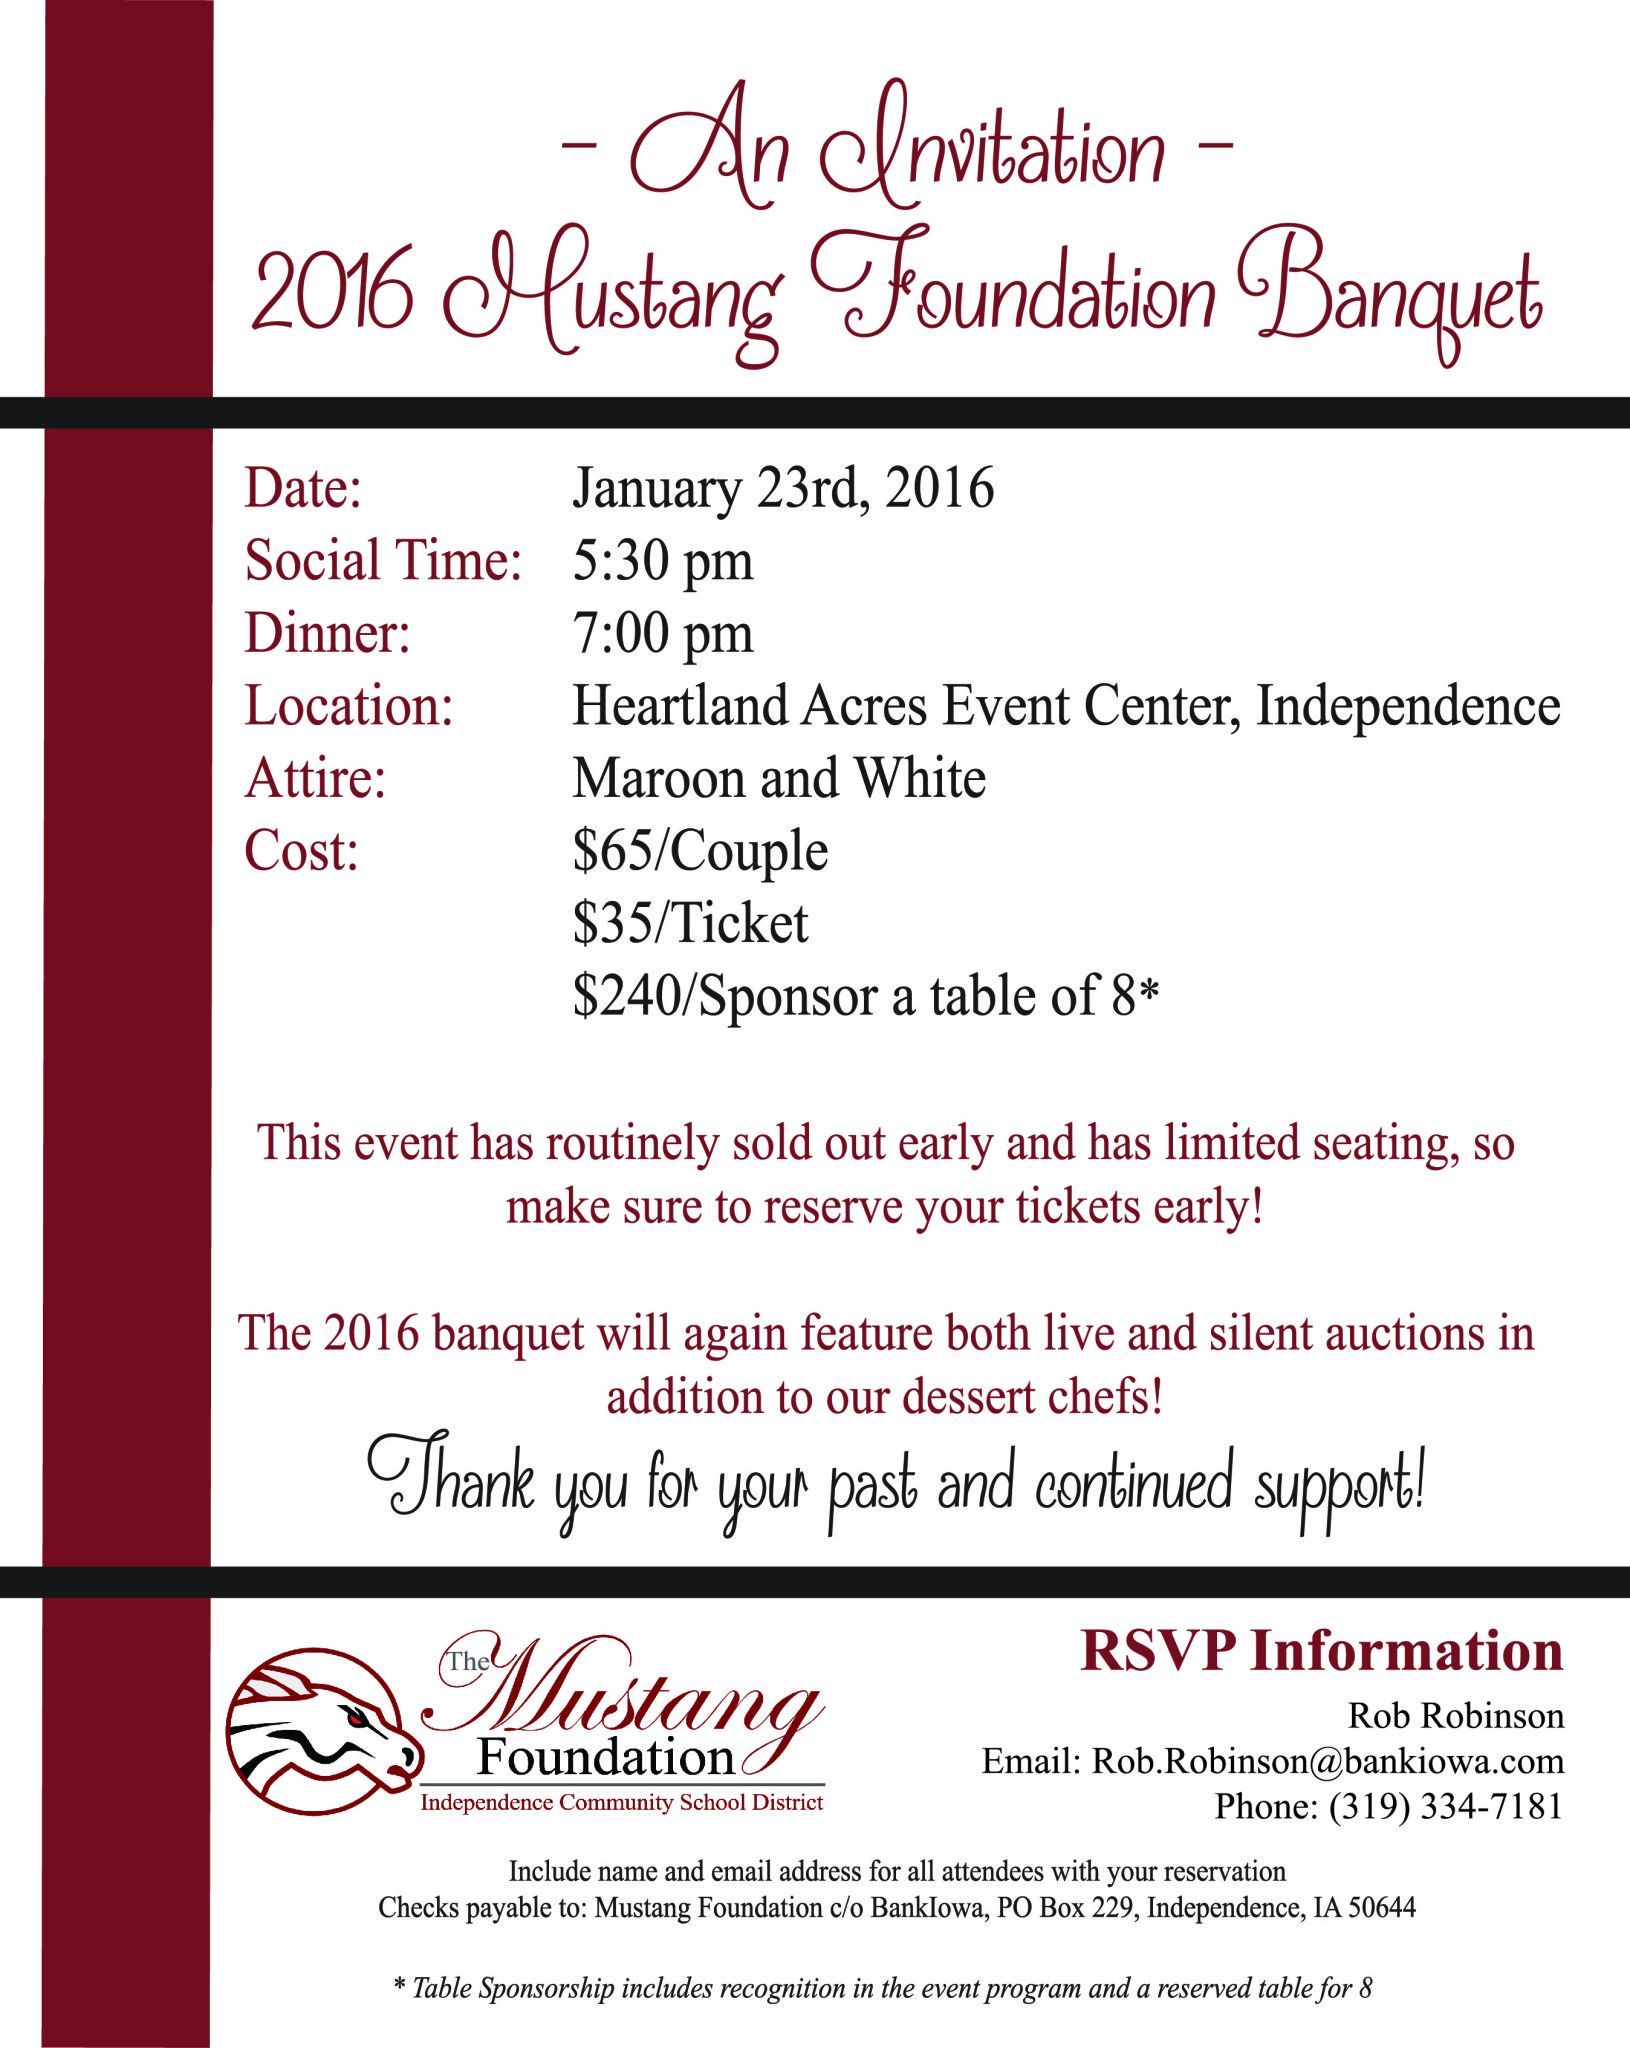 2016 Mustang Foundation Banquet Invite